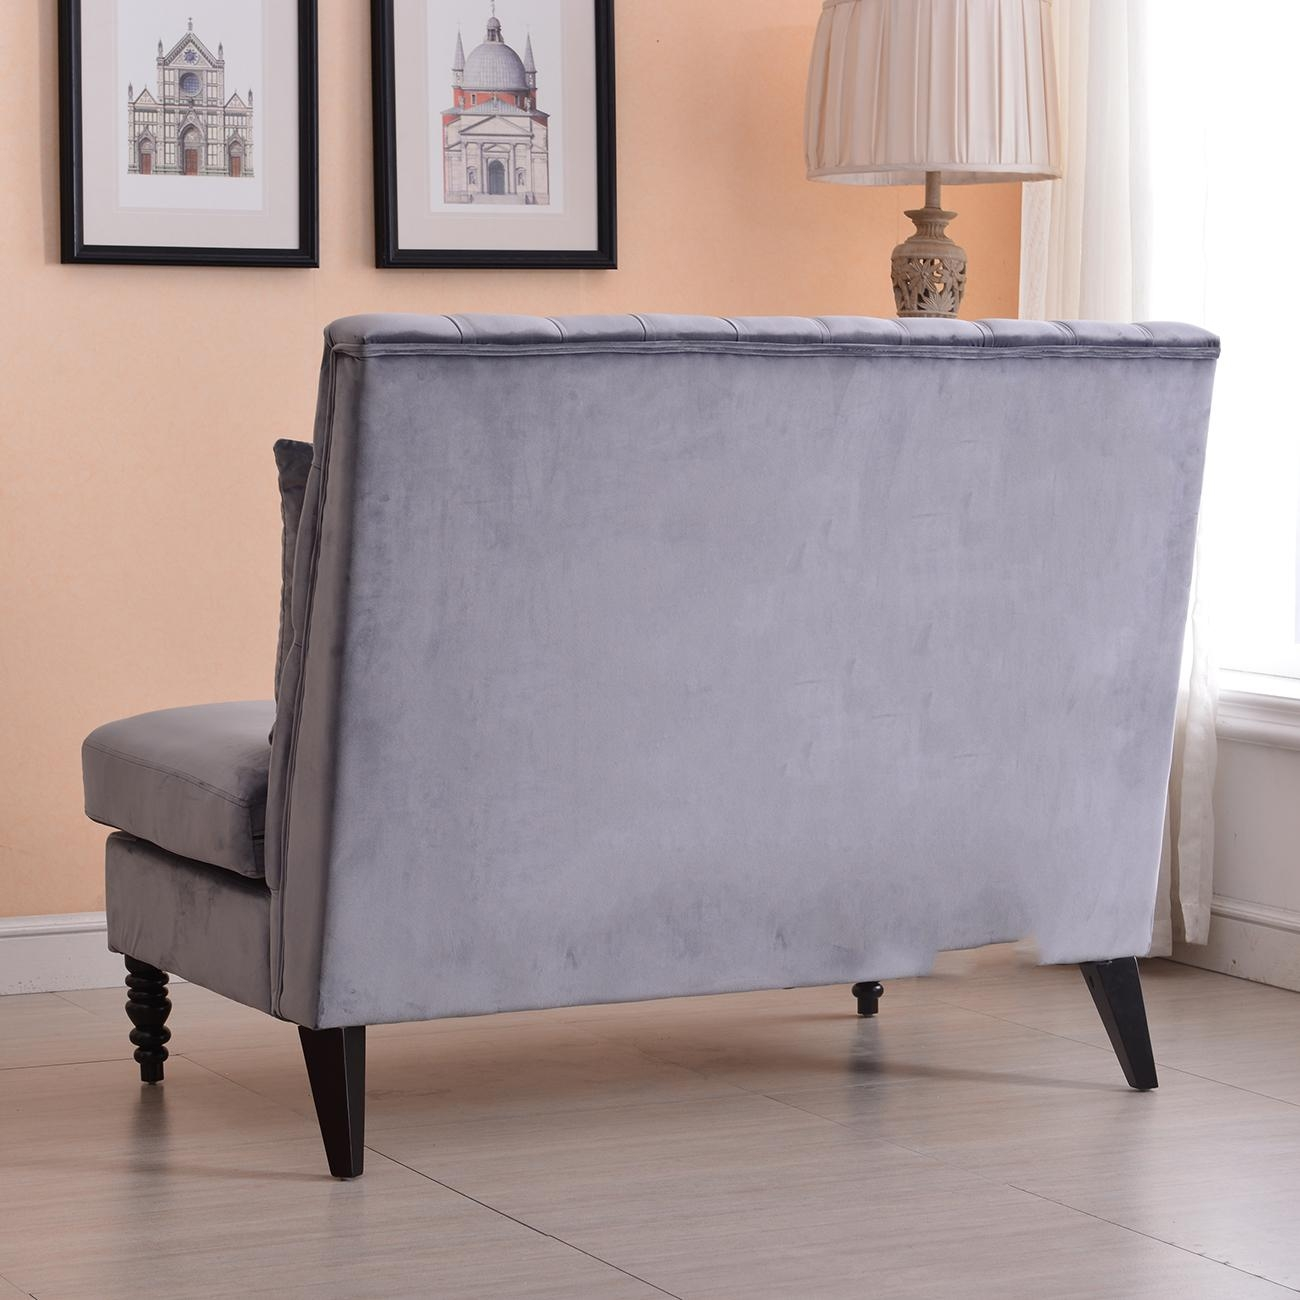 New Modern Tufted Settee Bedroom Bench Sofa High Back Cushion Seat regarding Bedroom Bench Sofas